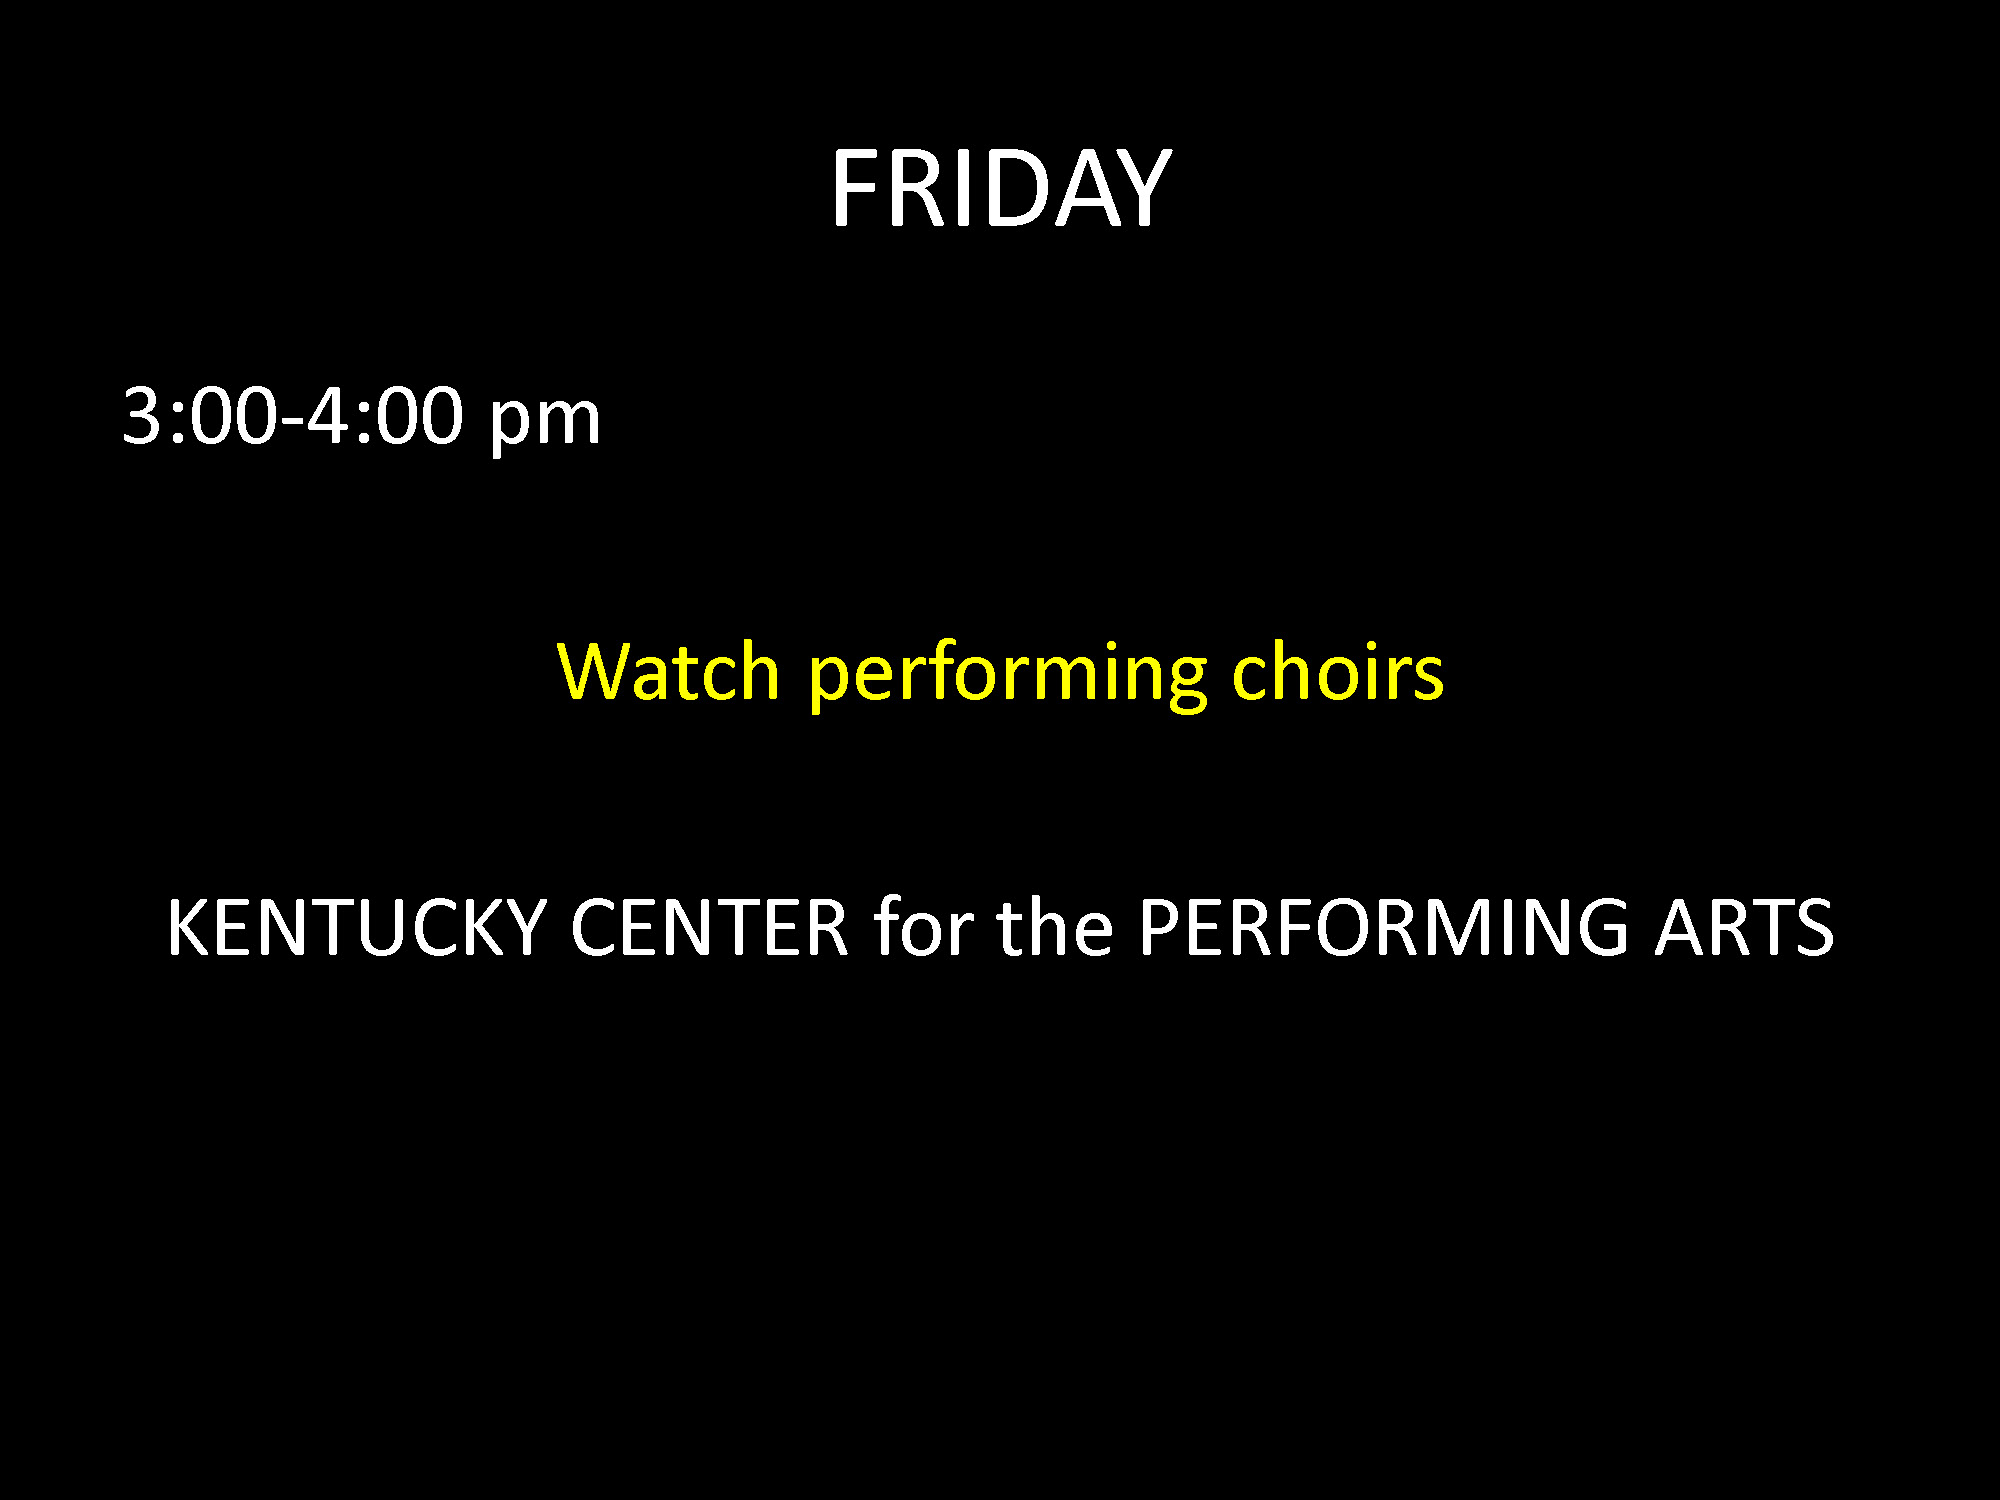 ACDA Louisville Pictures_Page_070.jpg